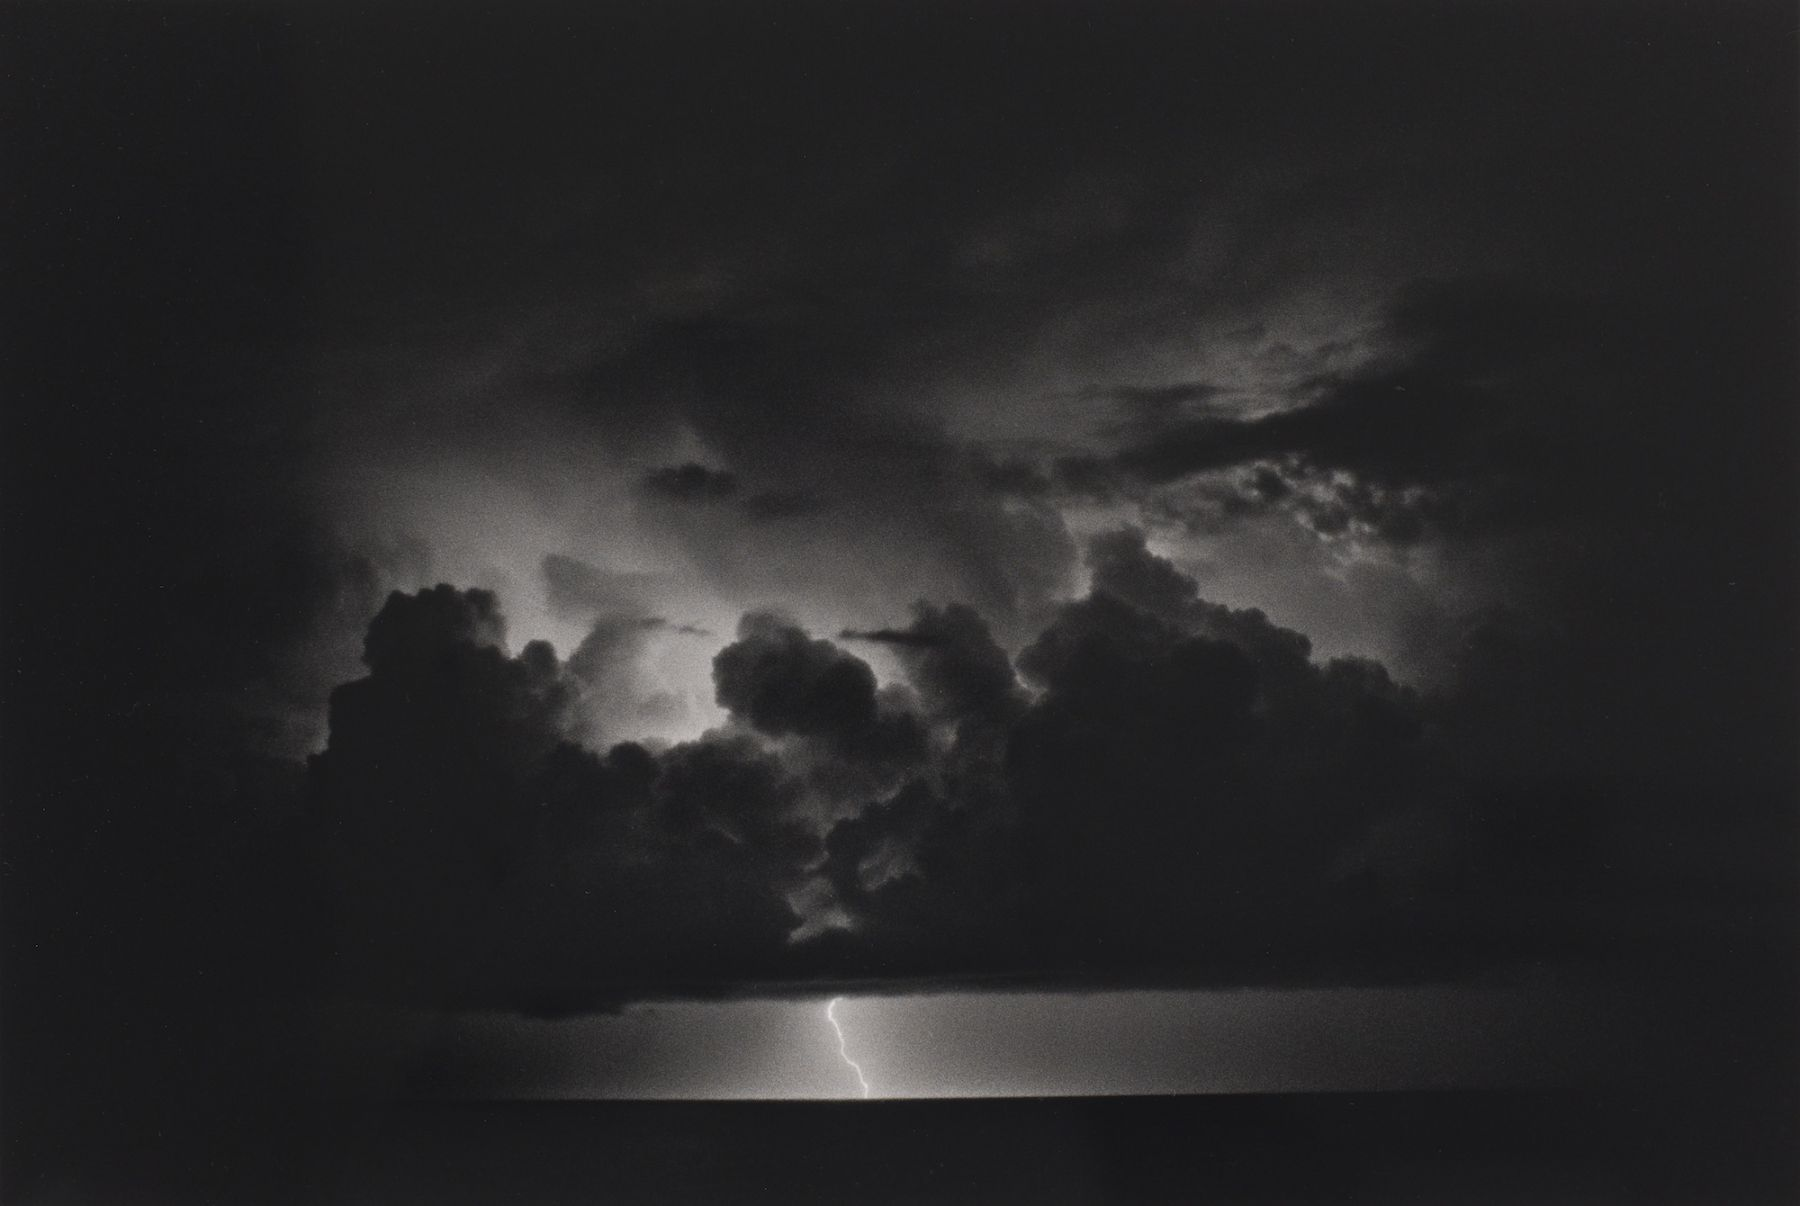 Bernard Plossu (1945-)  The Storm of Ulysses, 1988  Gelatin silver print  11 x 14 inches (paper), black and white photography